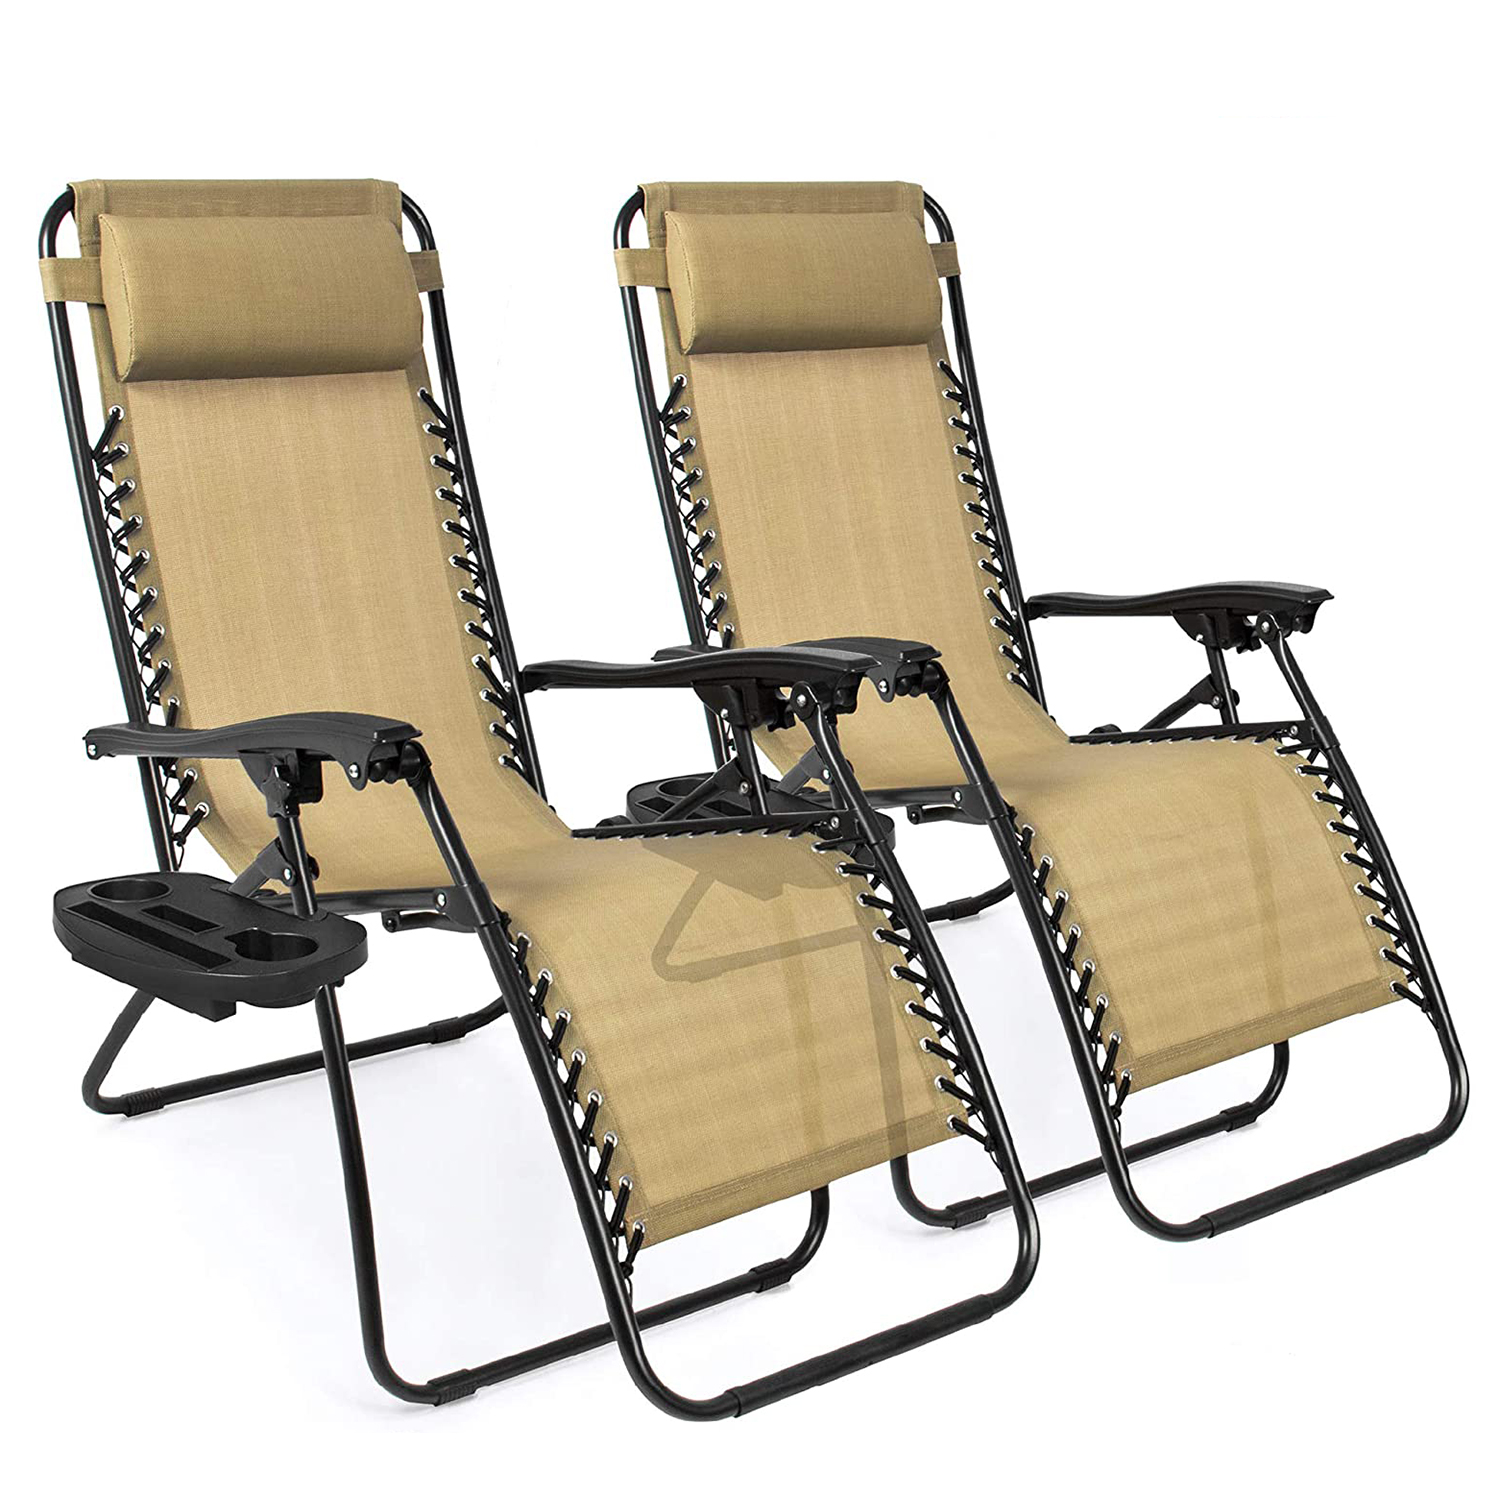 Best Choice Products Set of 2 Adjustable Steel Mesh Zero Gravity Lounge Chair Recliners w/Pillows